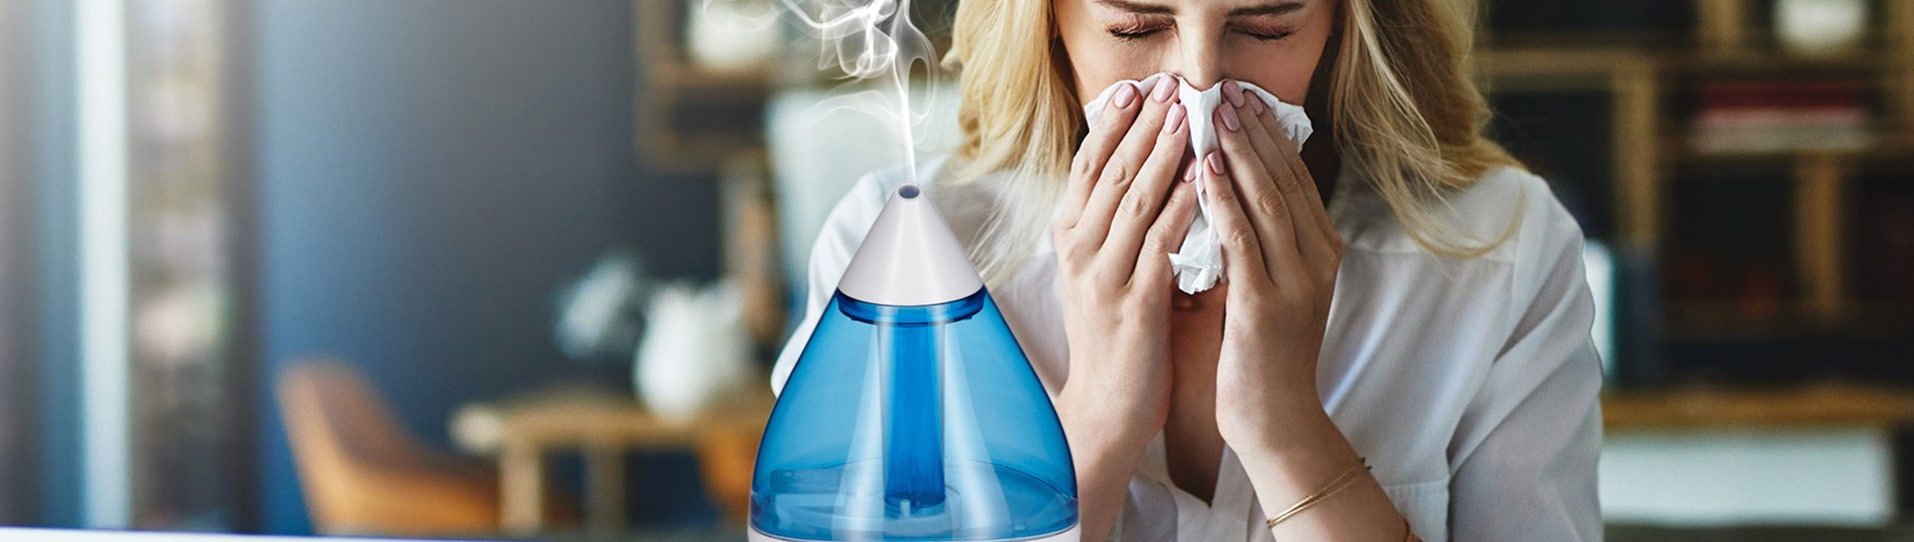 Best Humidifiers for Sinus Problems